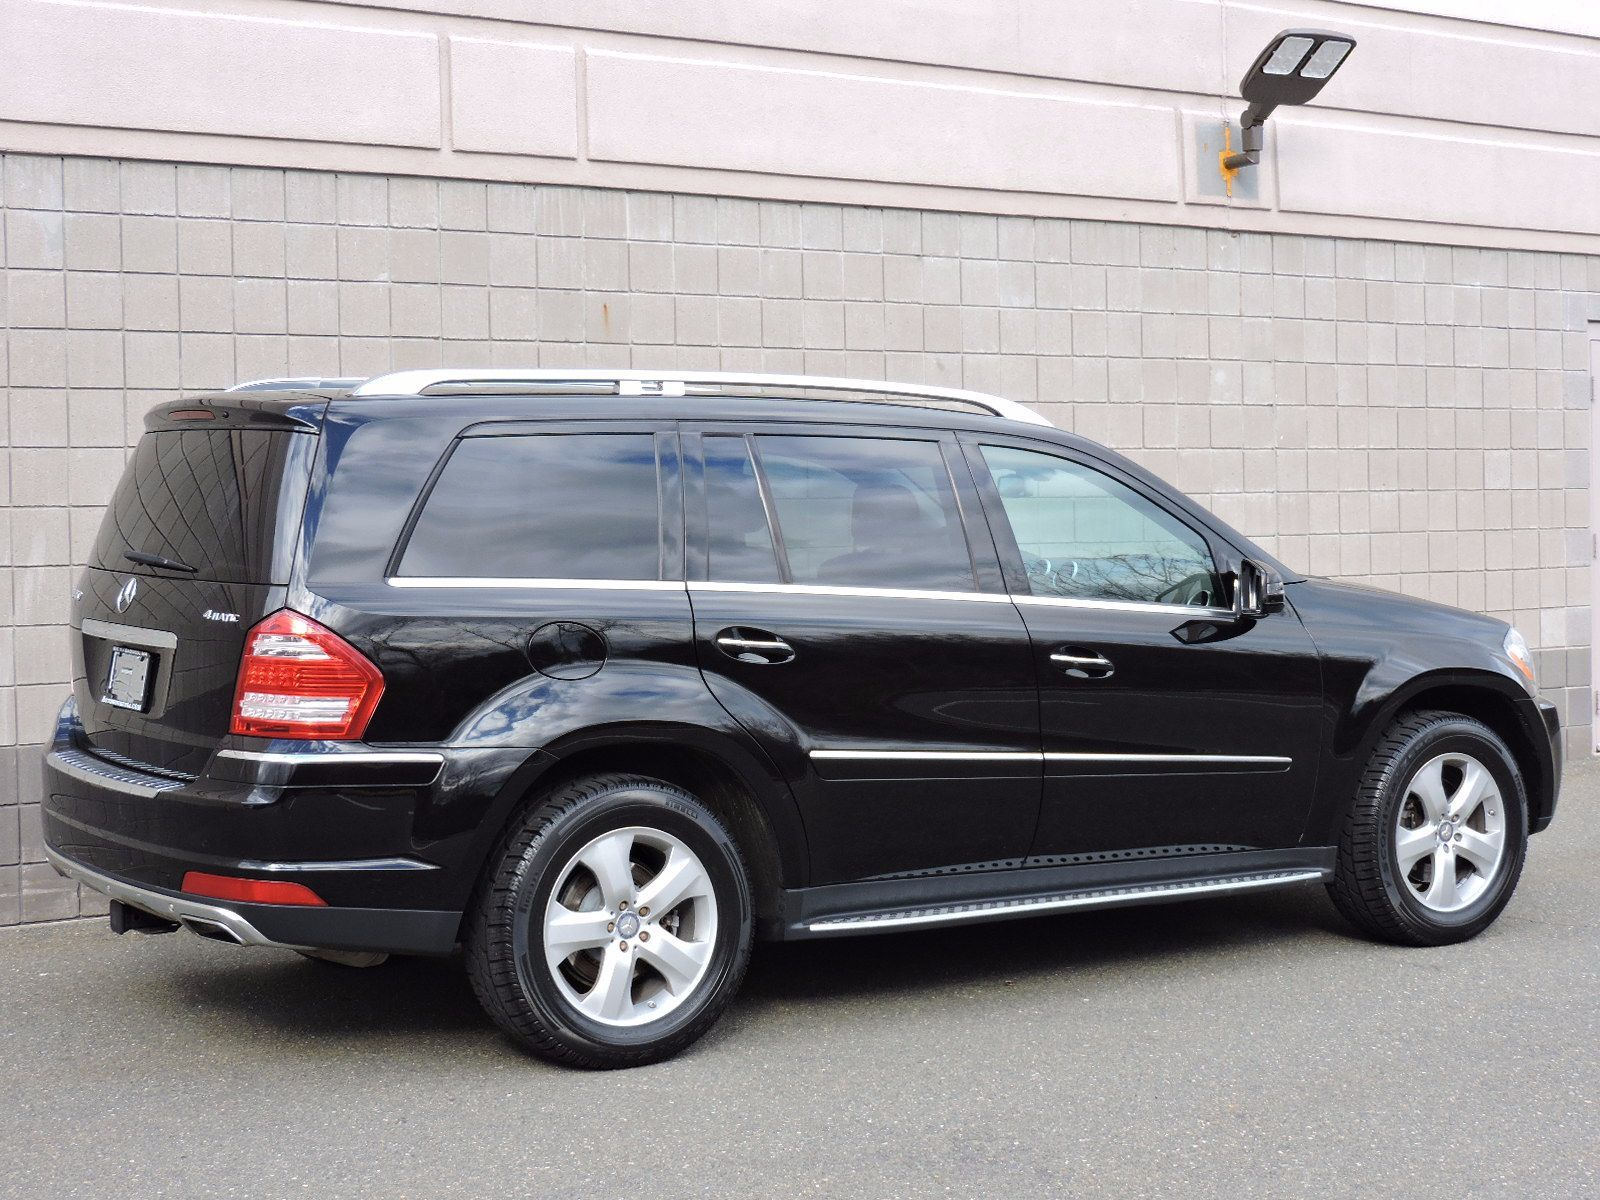 Used 2011 mercedes benz gl450 ltz at saugus auto mall for Mercedes benz gl 450 price